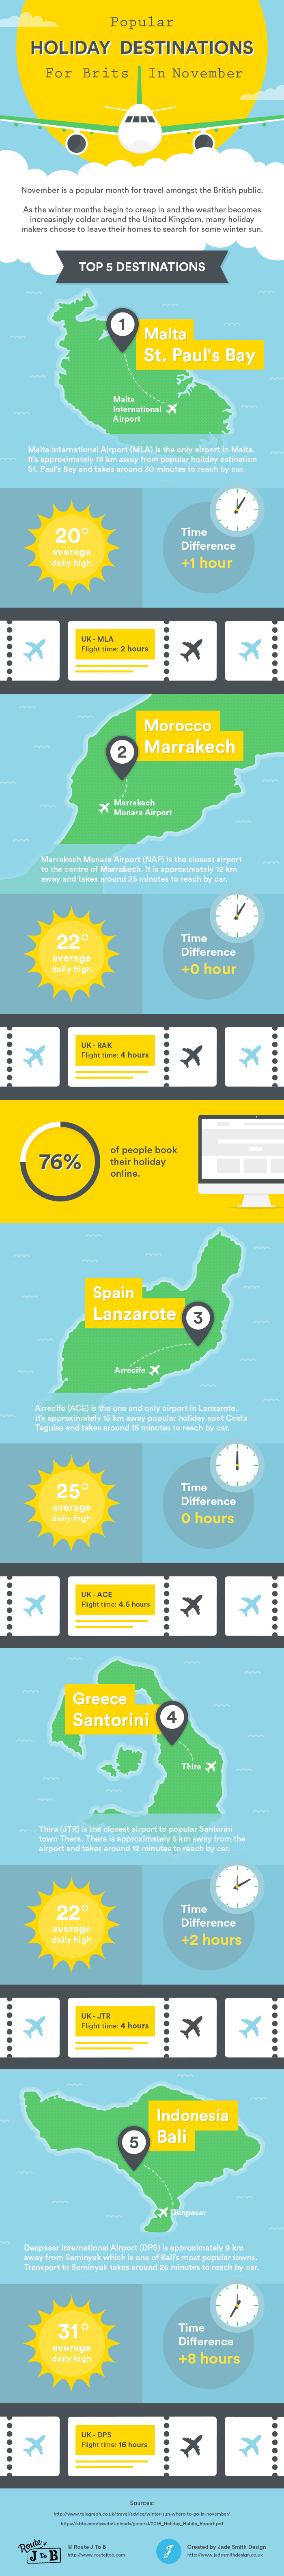 Popular Holiday Destinations For Brits In November Infographic